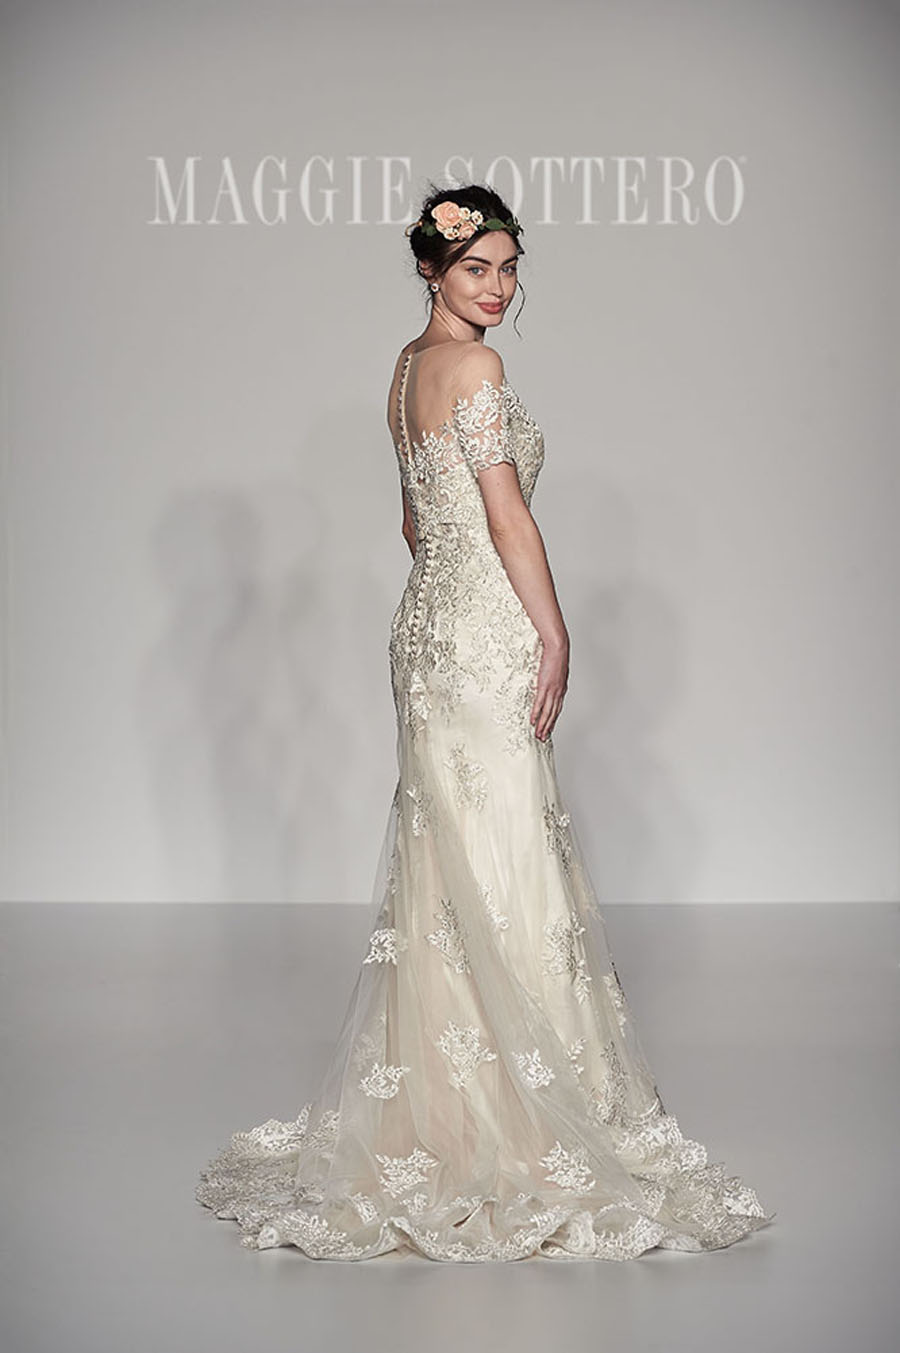 Maggie Sottero Spring 2017 Collection - reynold back